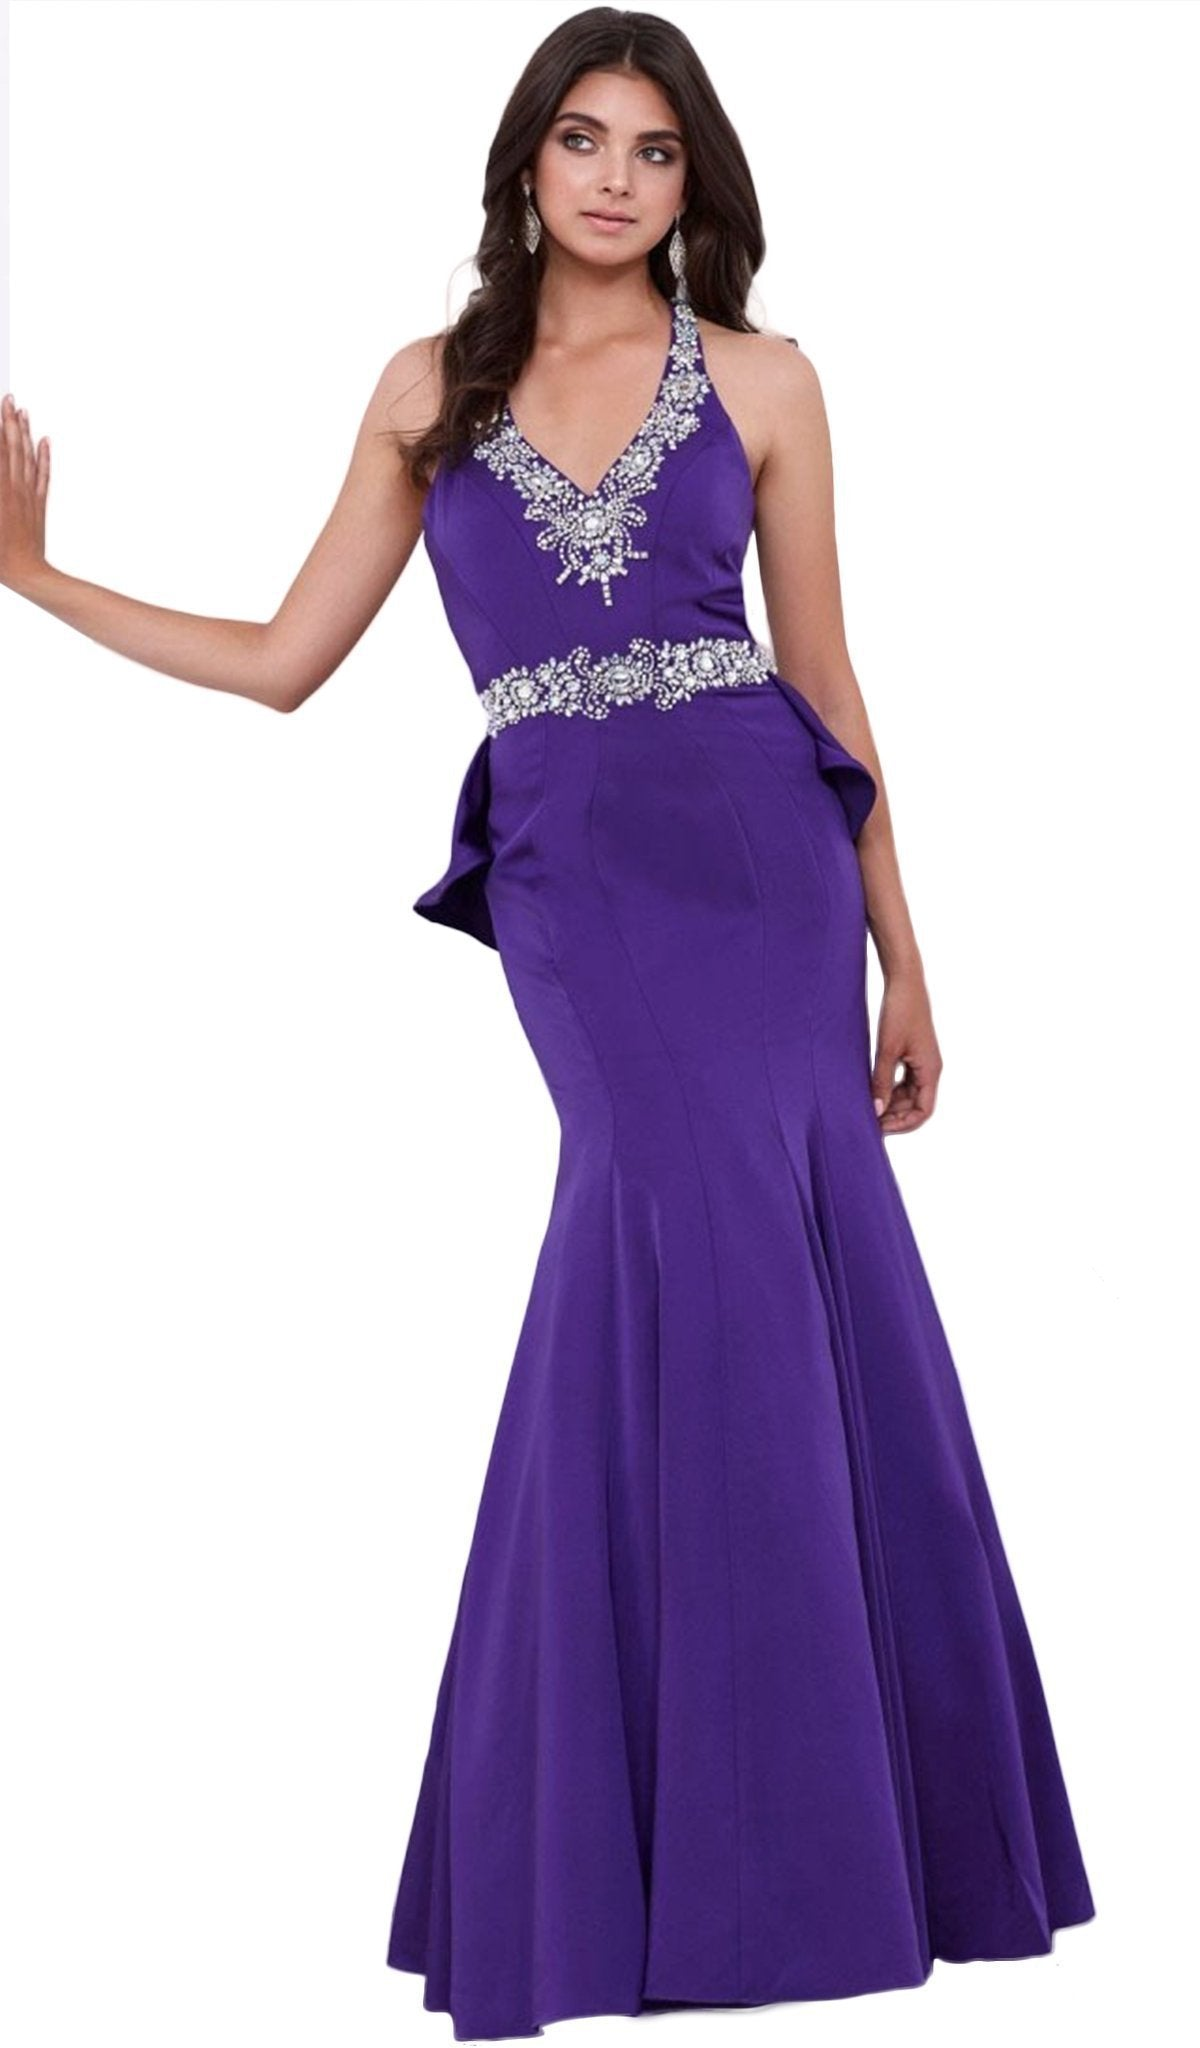 Nox Anabel - Bedazzled V-neck Satin Mermaid Dress 8315SC